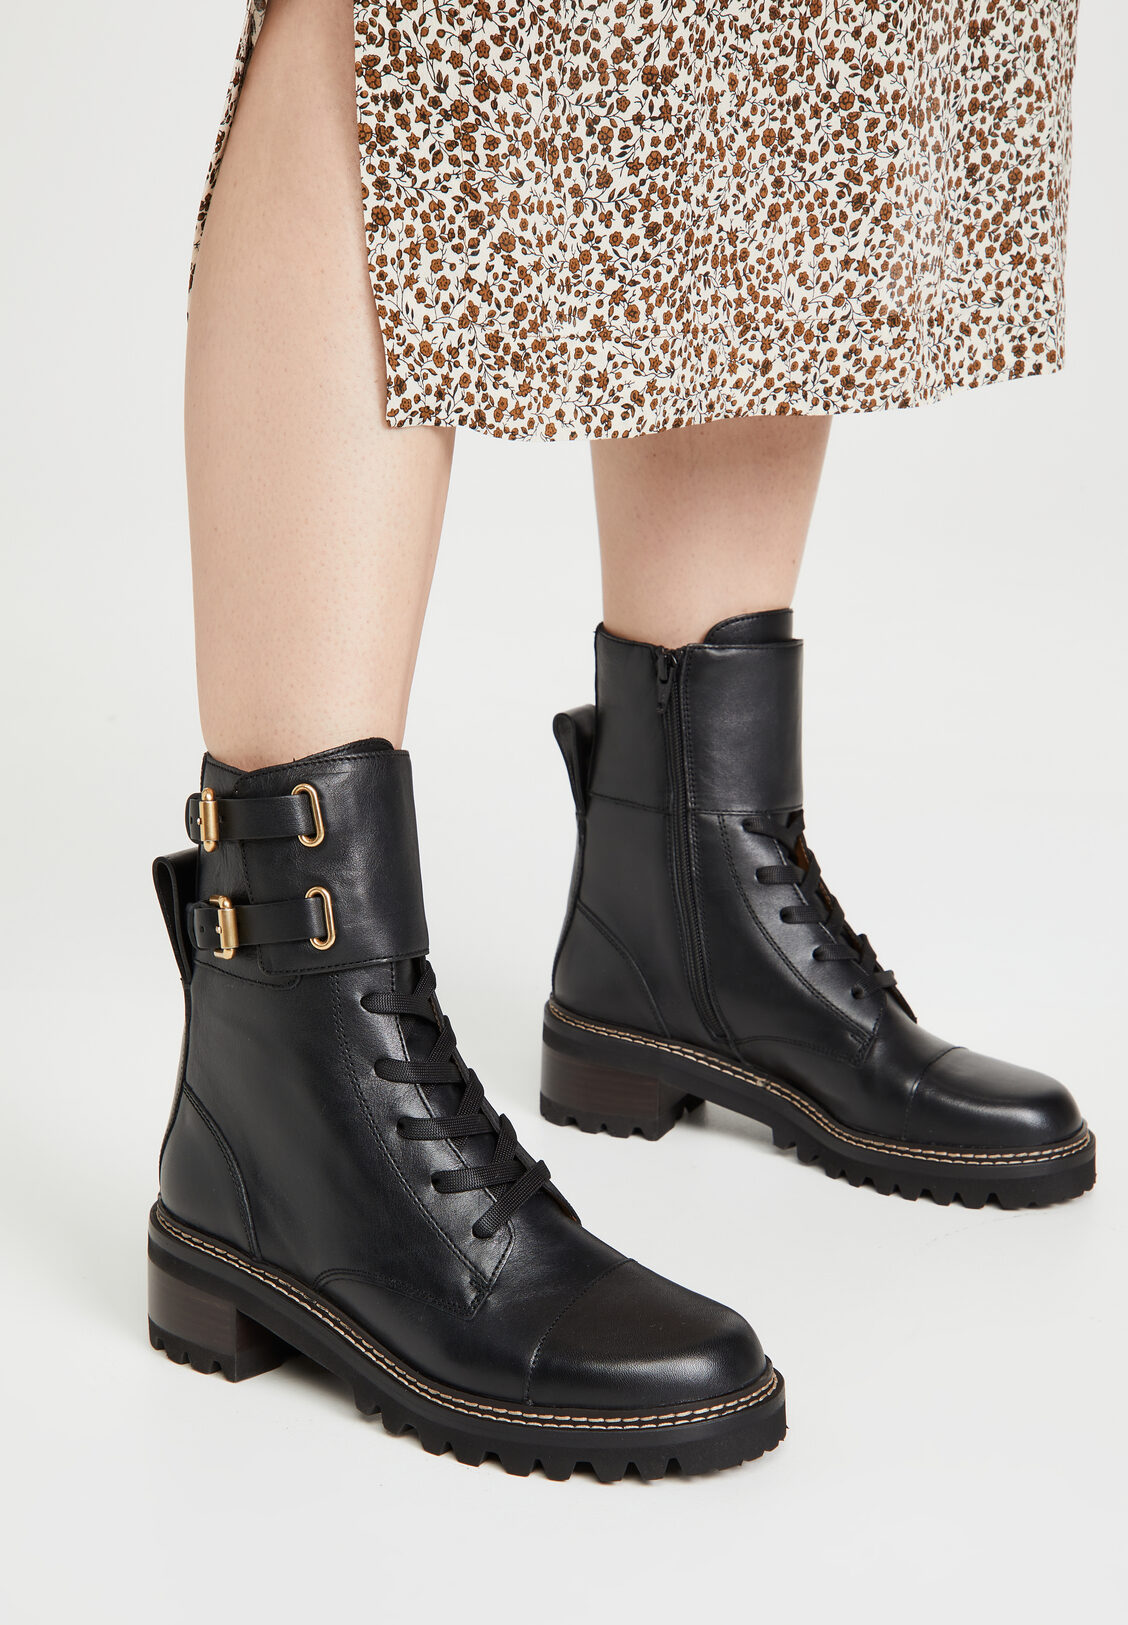 See by Chloe Mallory Boots for Early Fall Things